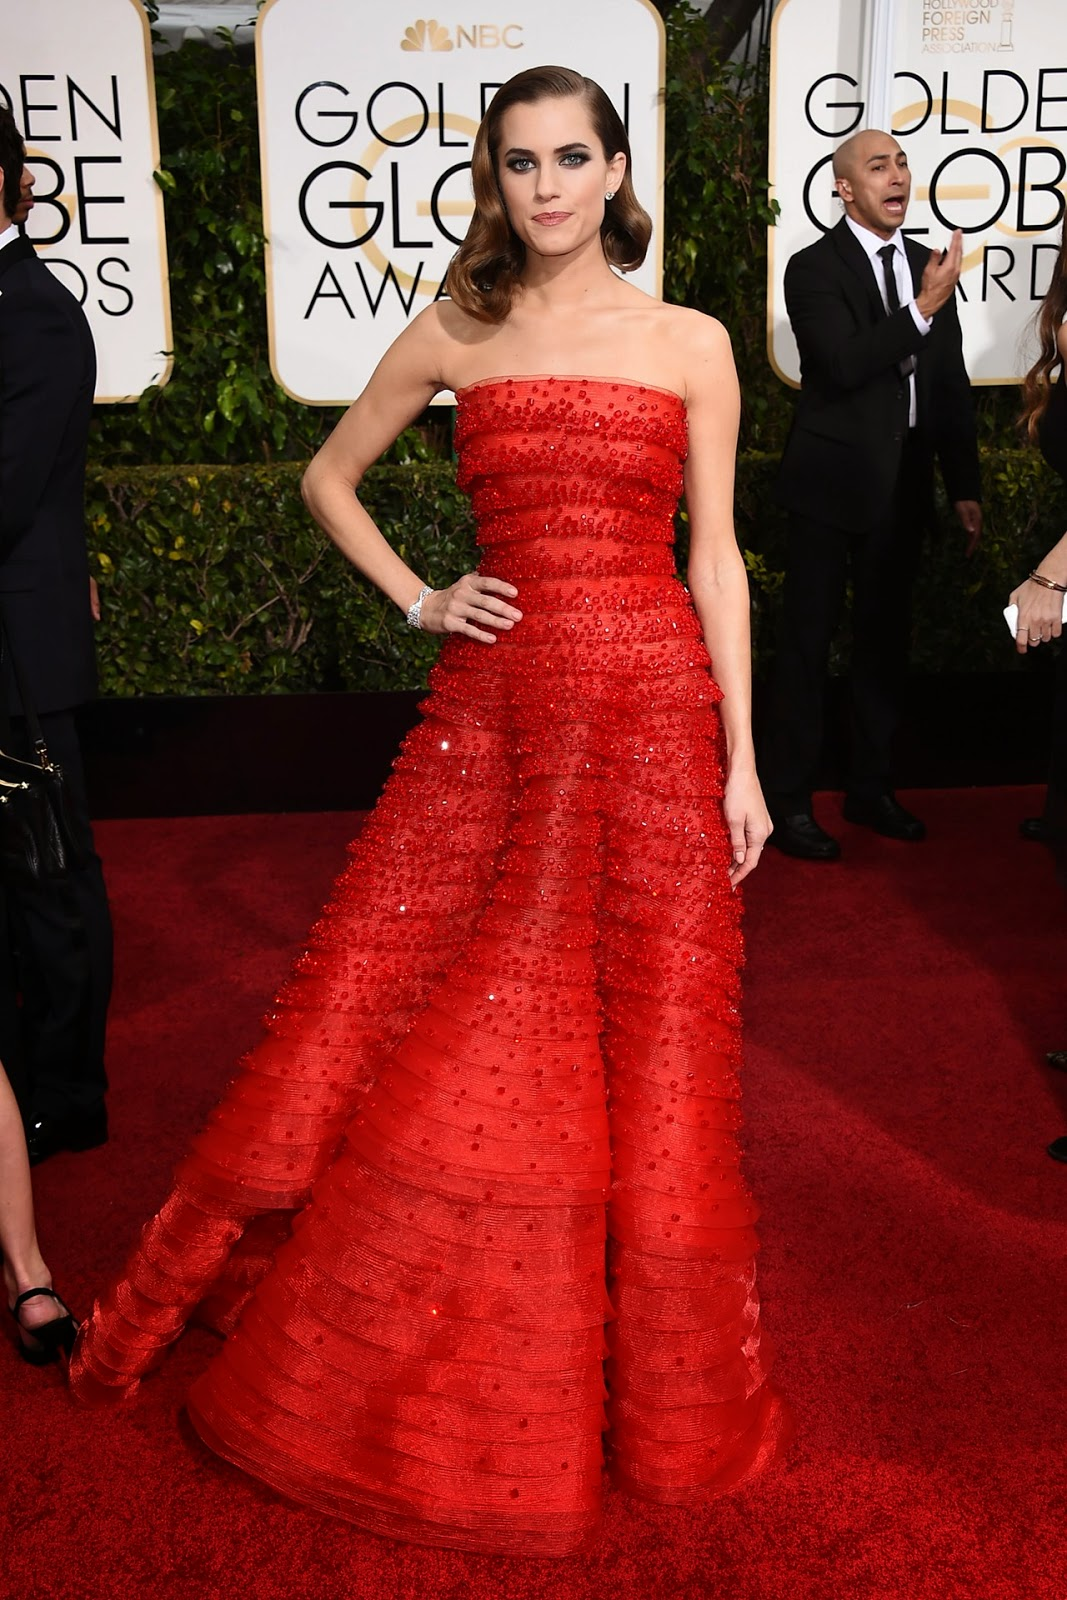 Allison Williams wore an Armani Privè gown at the Golden Globe Awards 2015